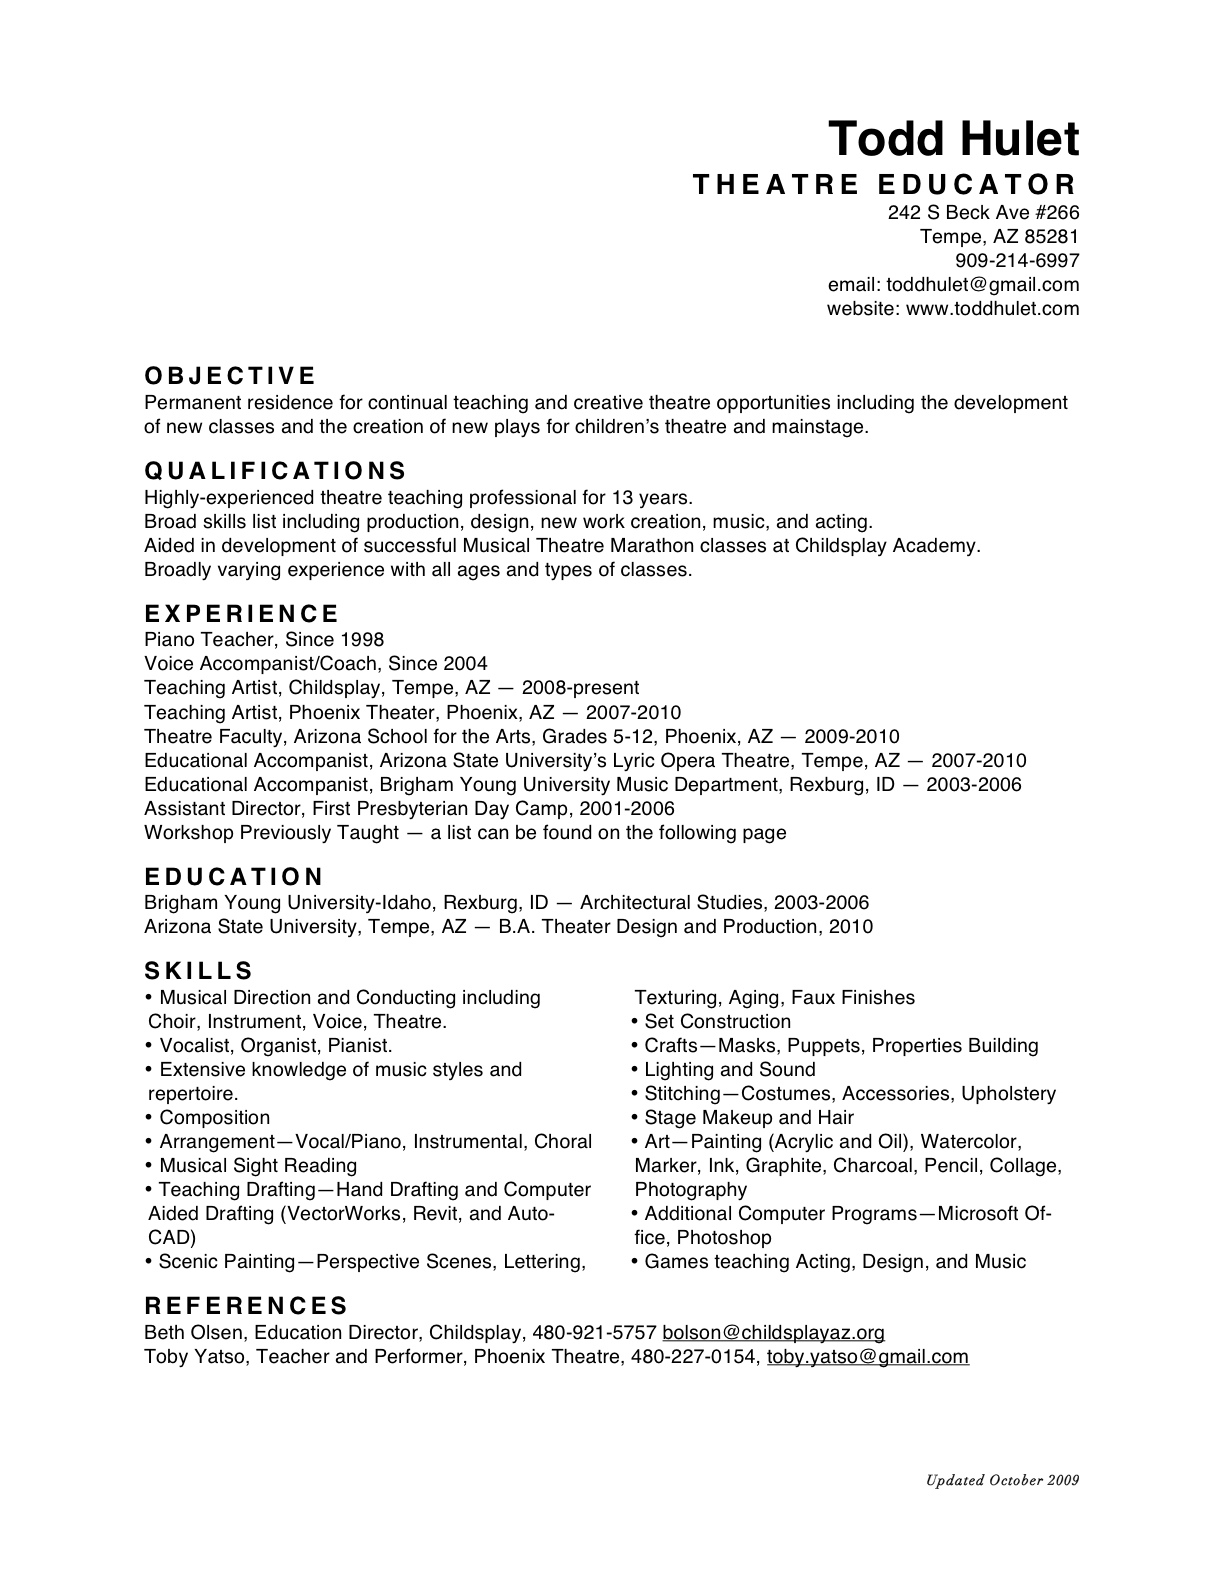 education resumes template education resumes